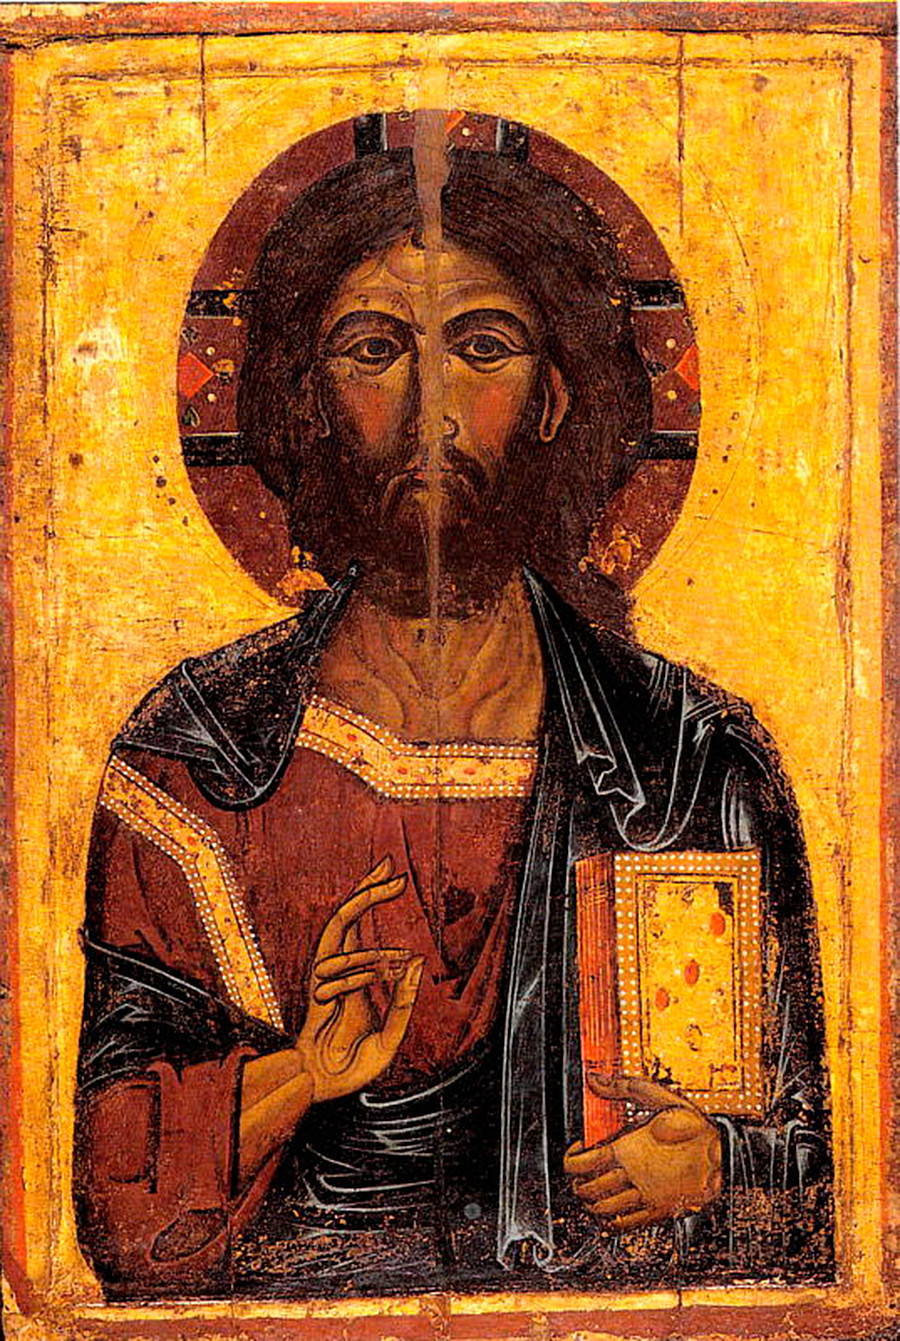 The oldest item of the museum: a 13th century icon of Christ Pantocrator from Gavshinka (a village near the city of Yaroslavl)